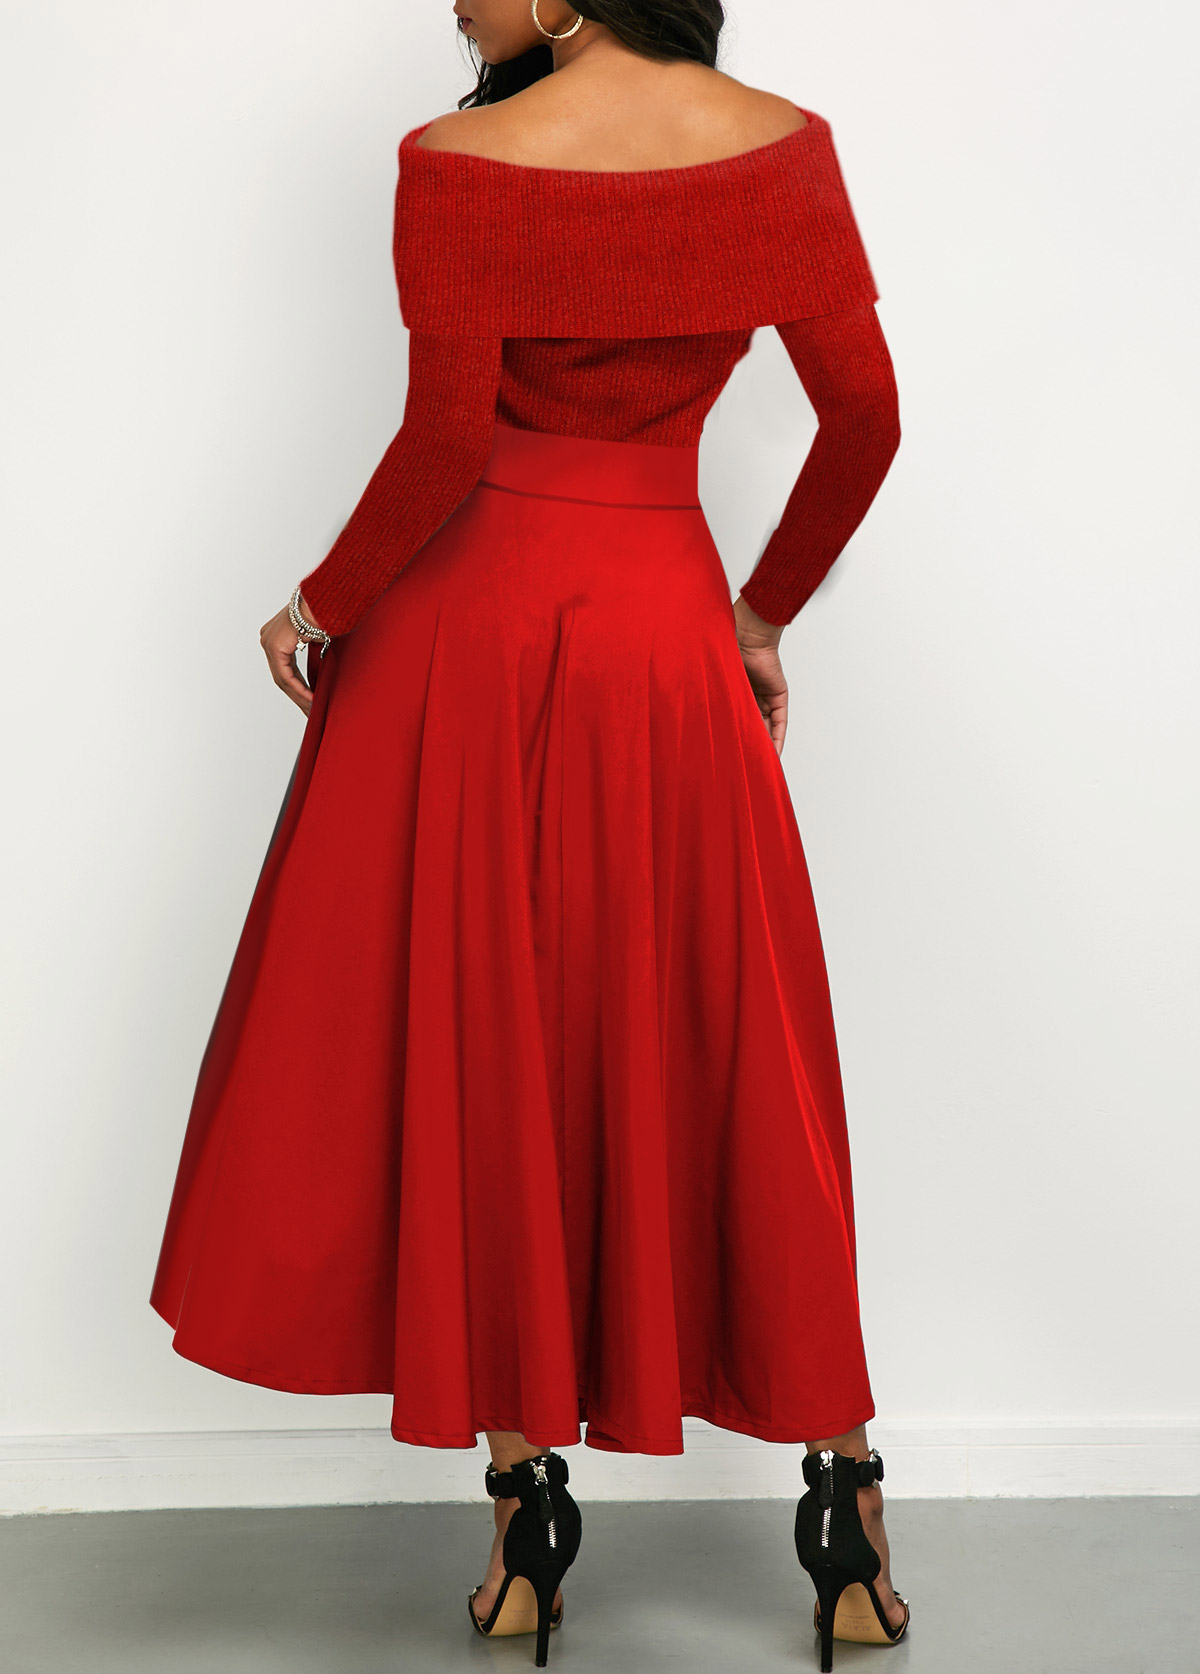 Bowknot Detail Off the Shoulder Red Maxi Dress